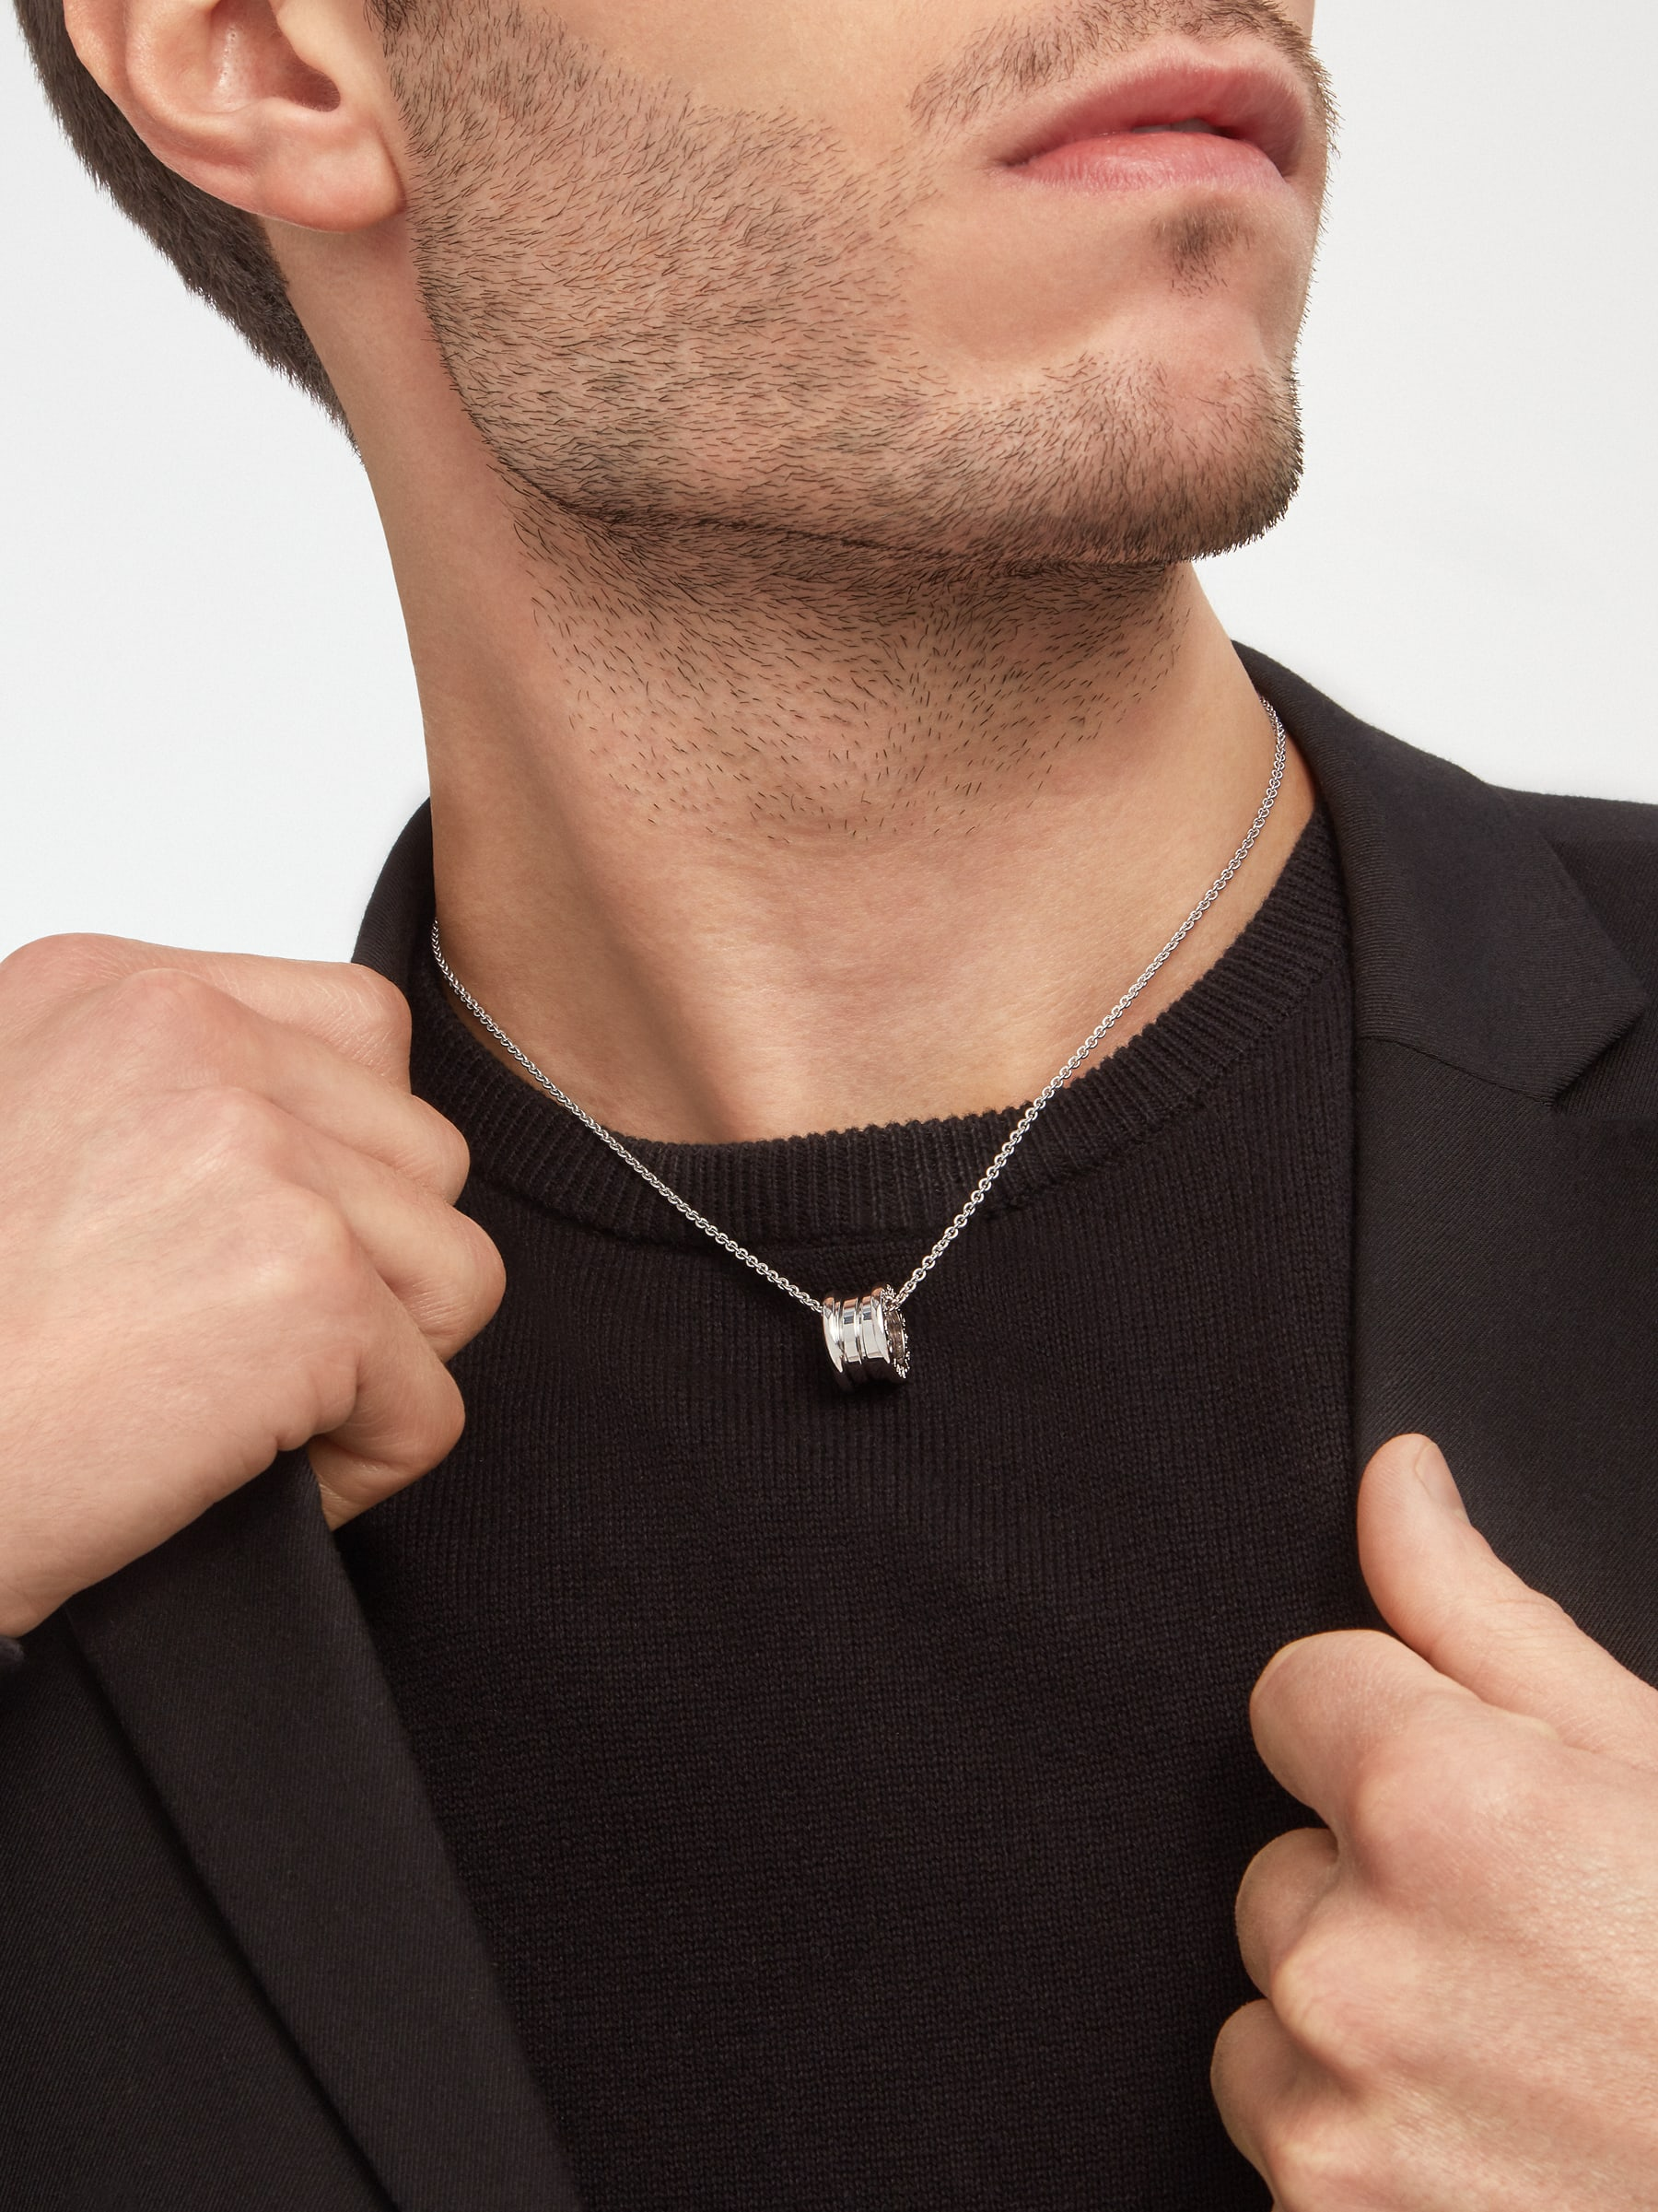 B.zero1 necklace with small round pendant, both in 18kt white gold. 352815 image 5